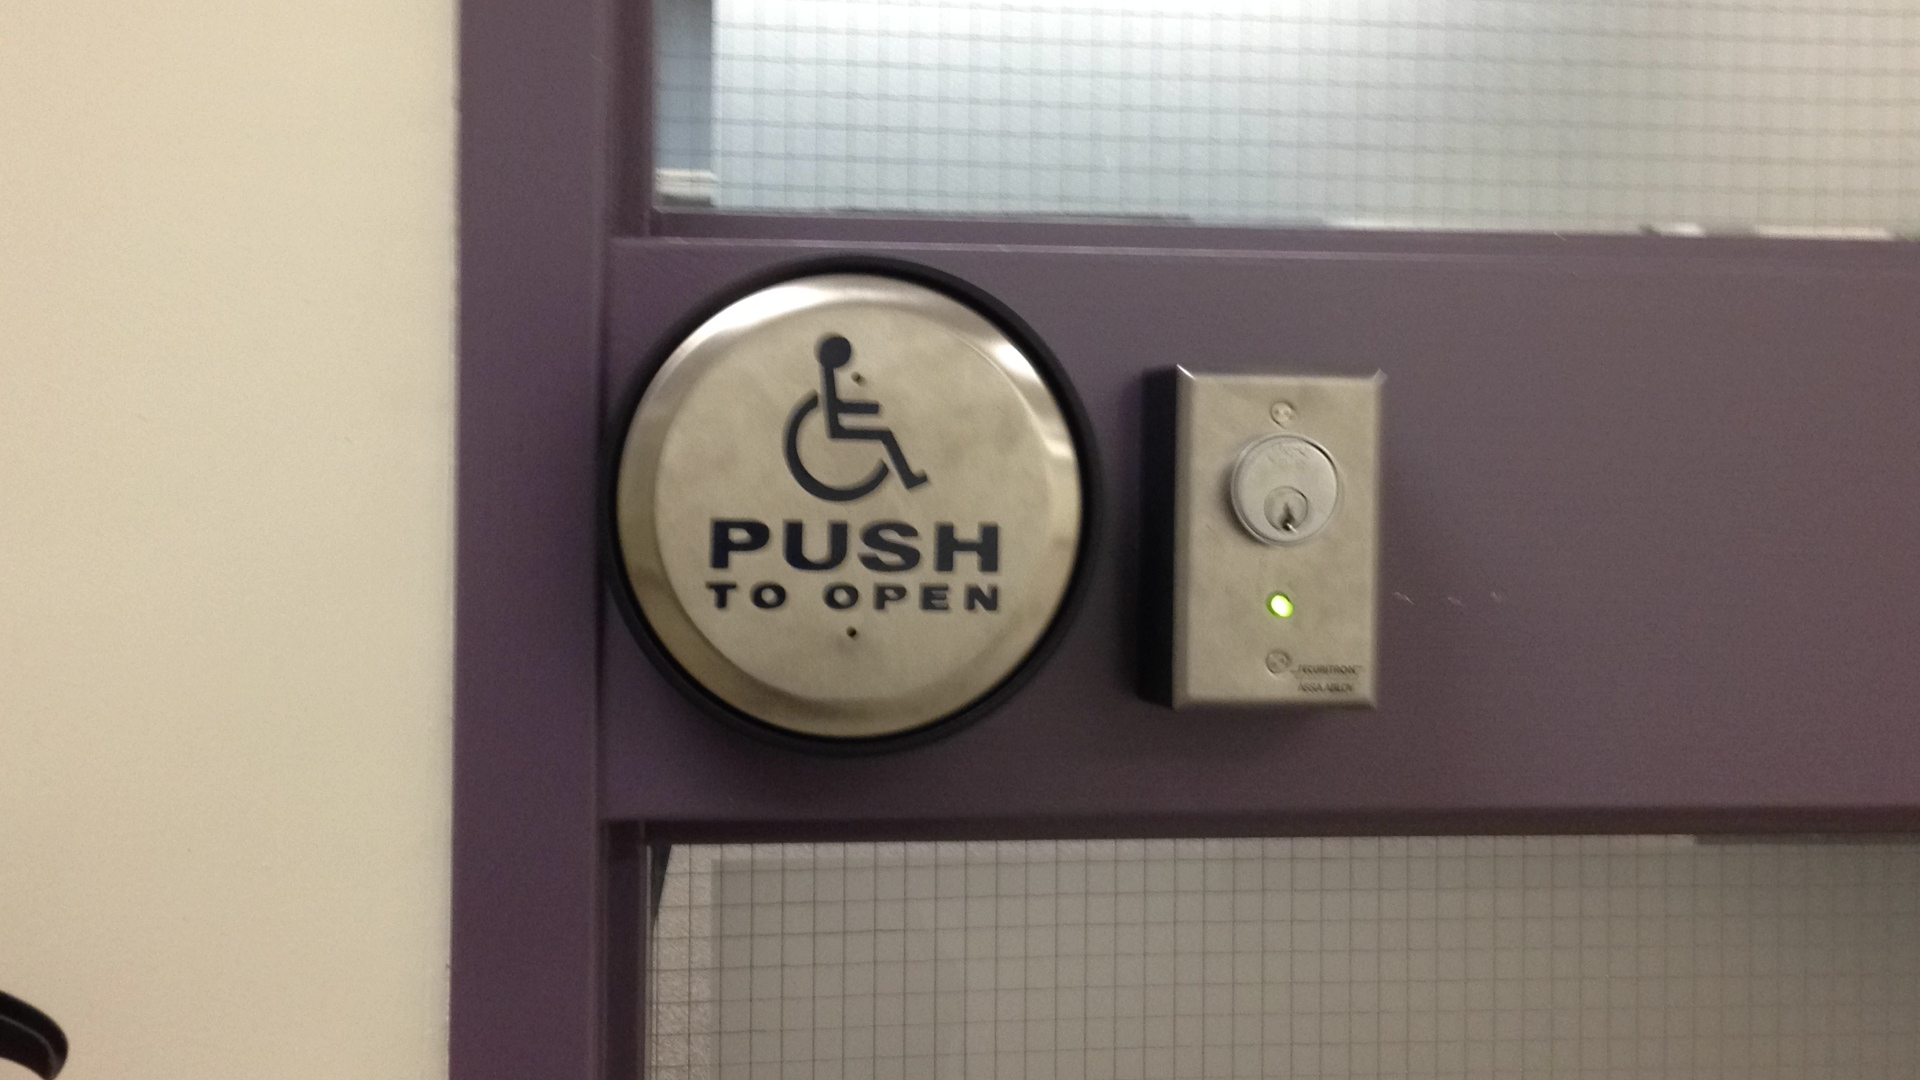 Western University focuses on accessibility in its architecture